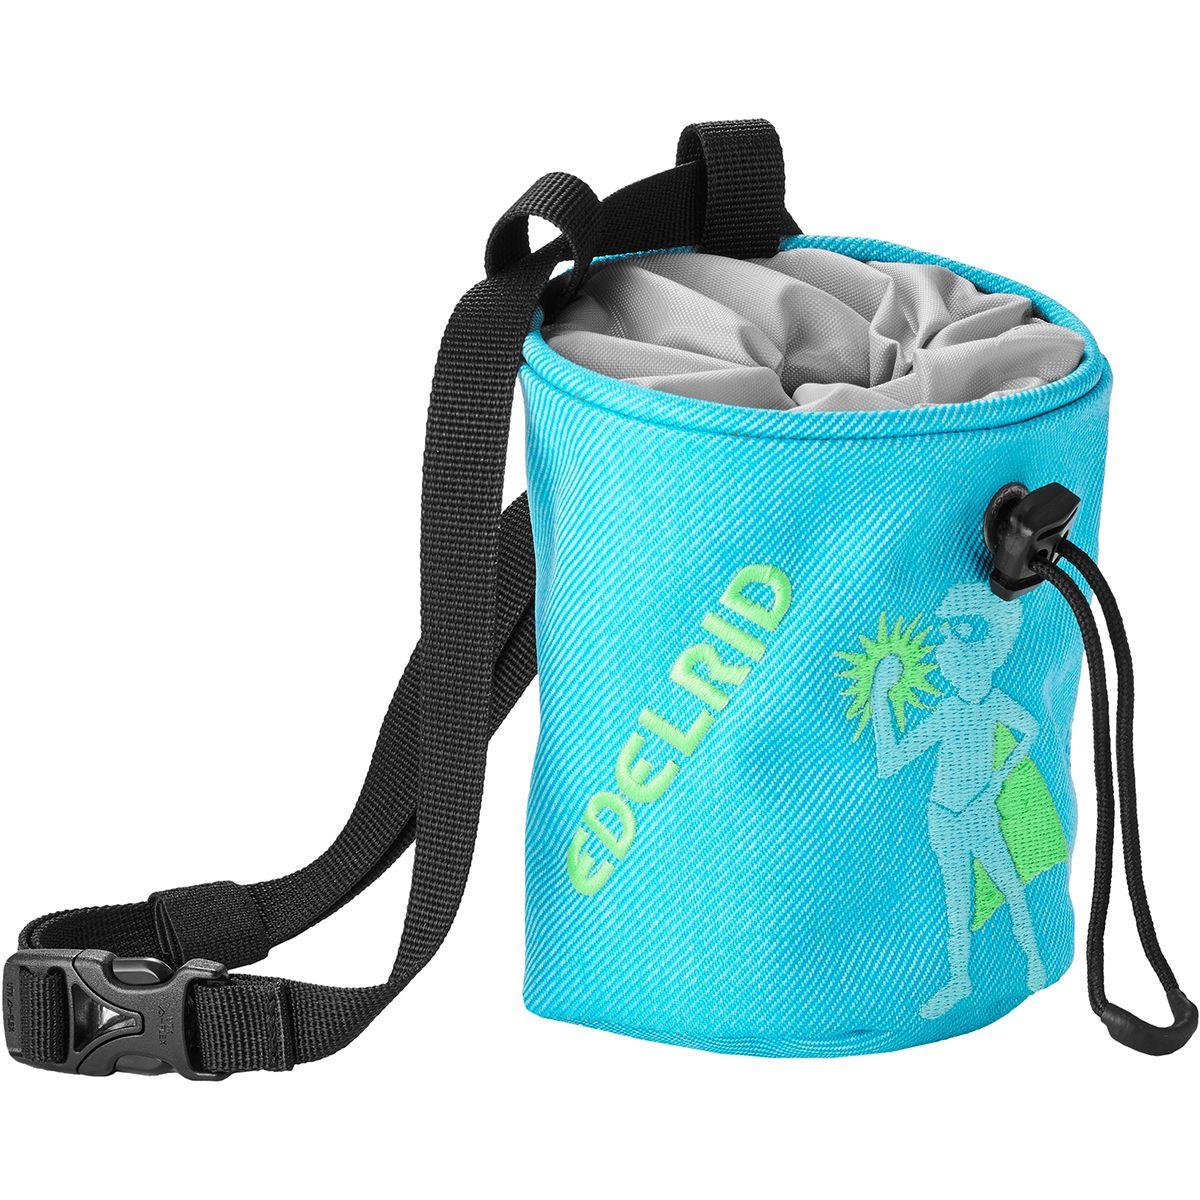 Edelrid Muffin Kids Chalk Bag